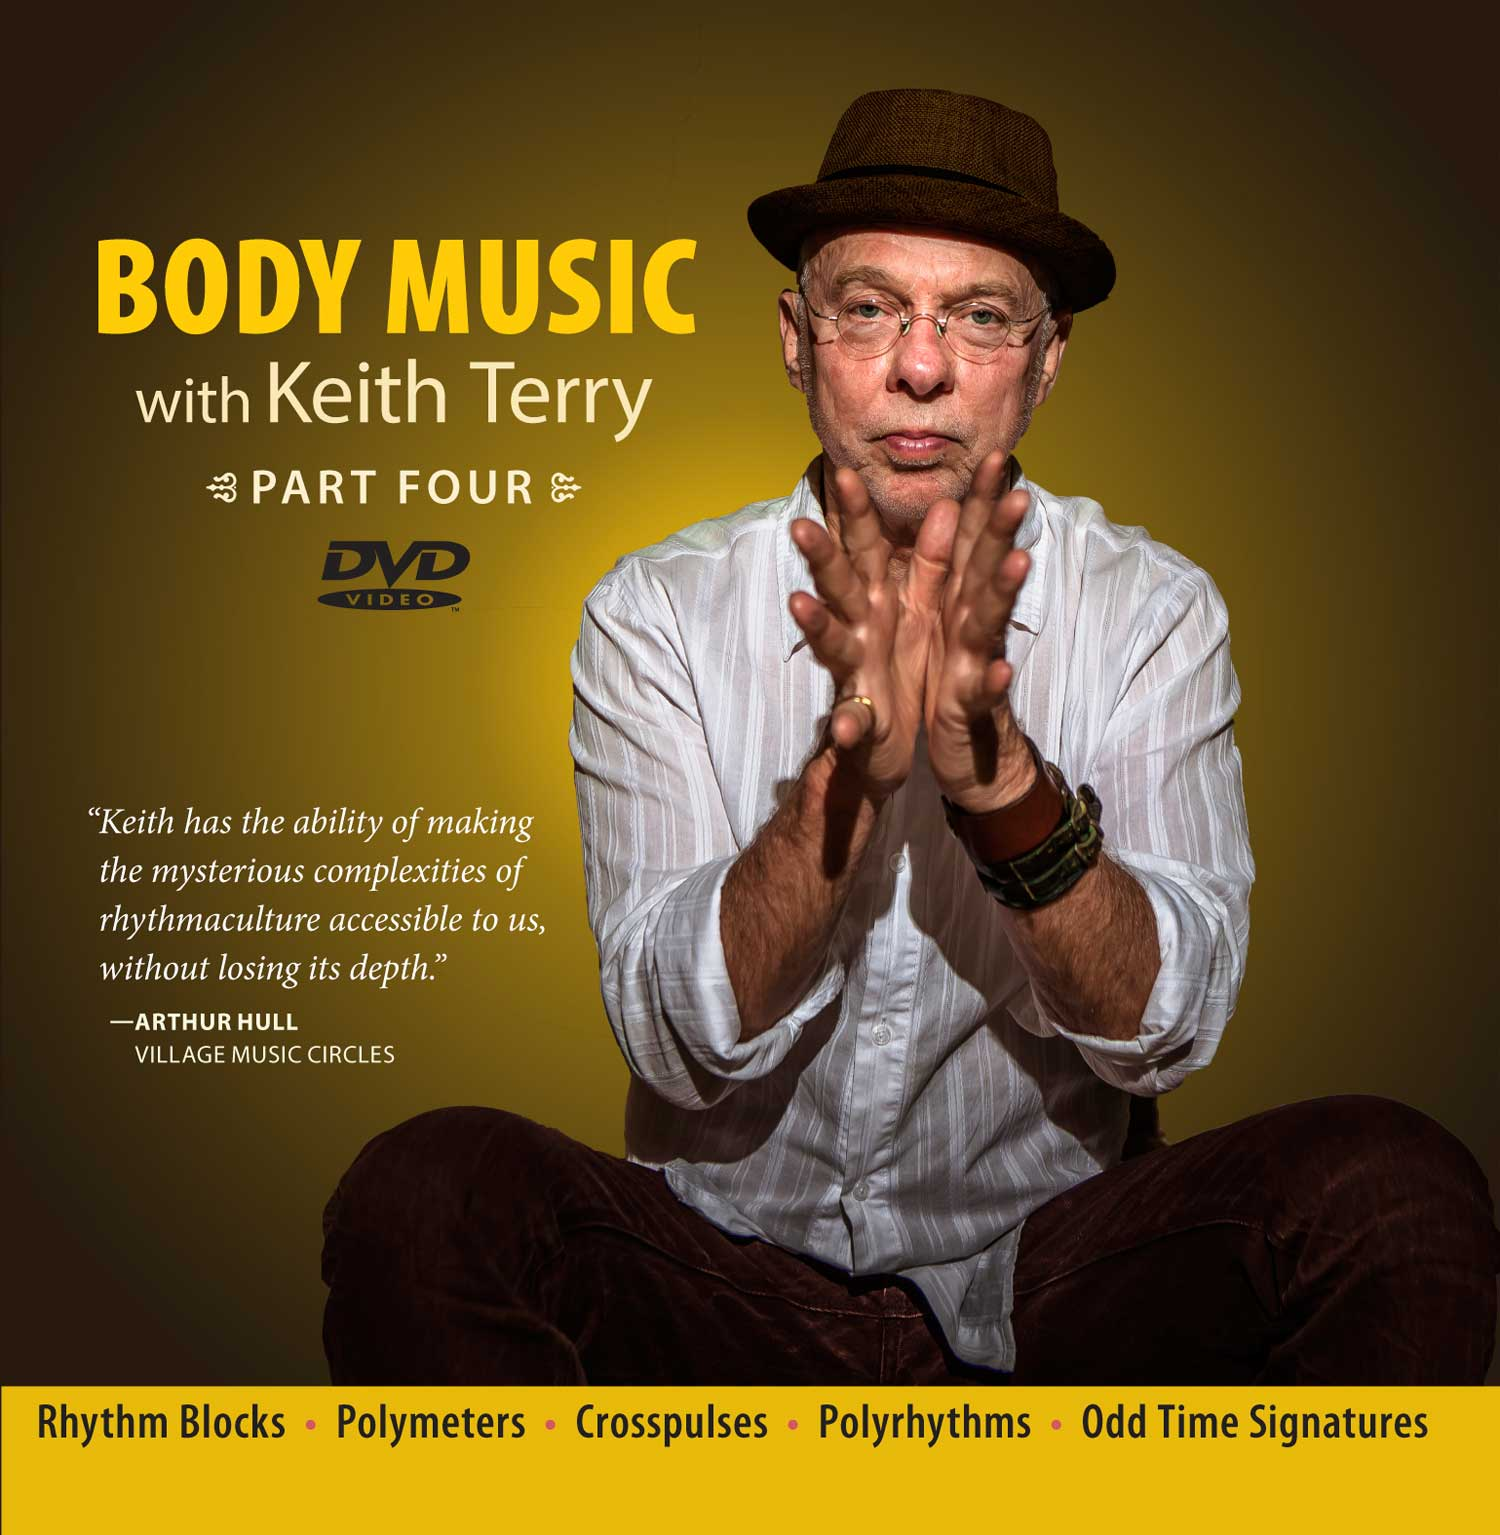 Body Music with Keith Terry Part 4